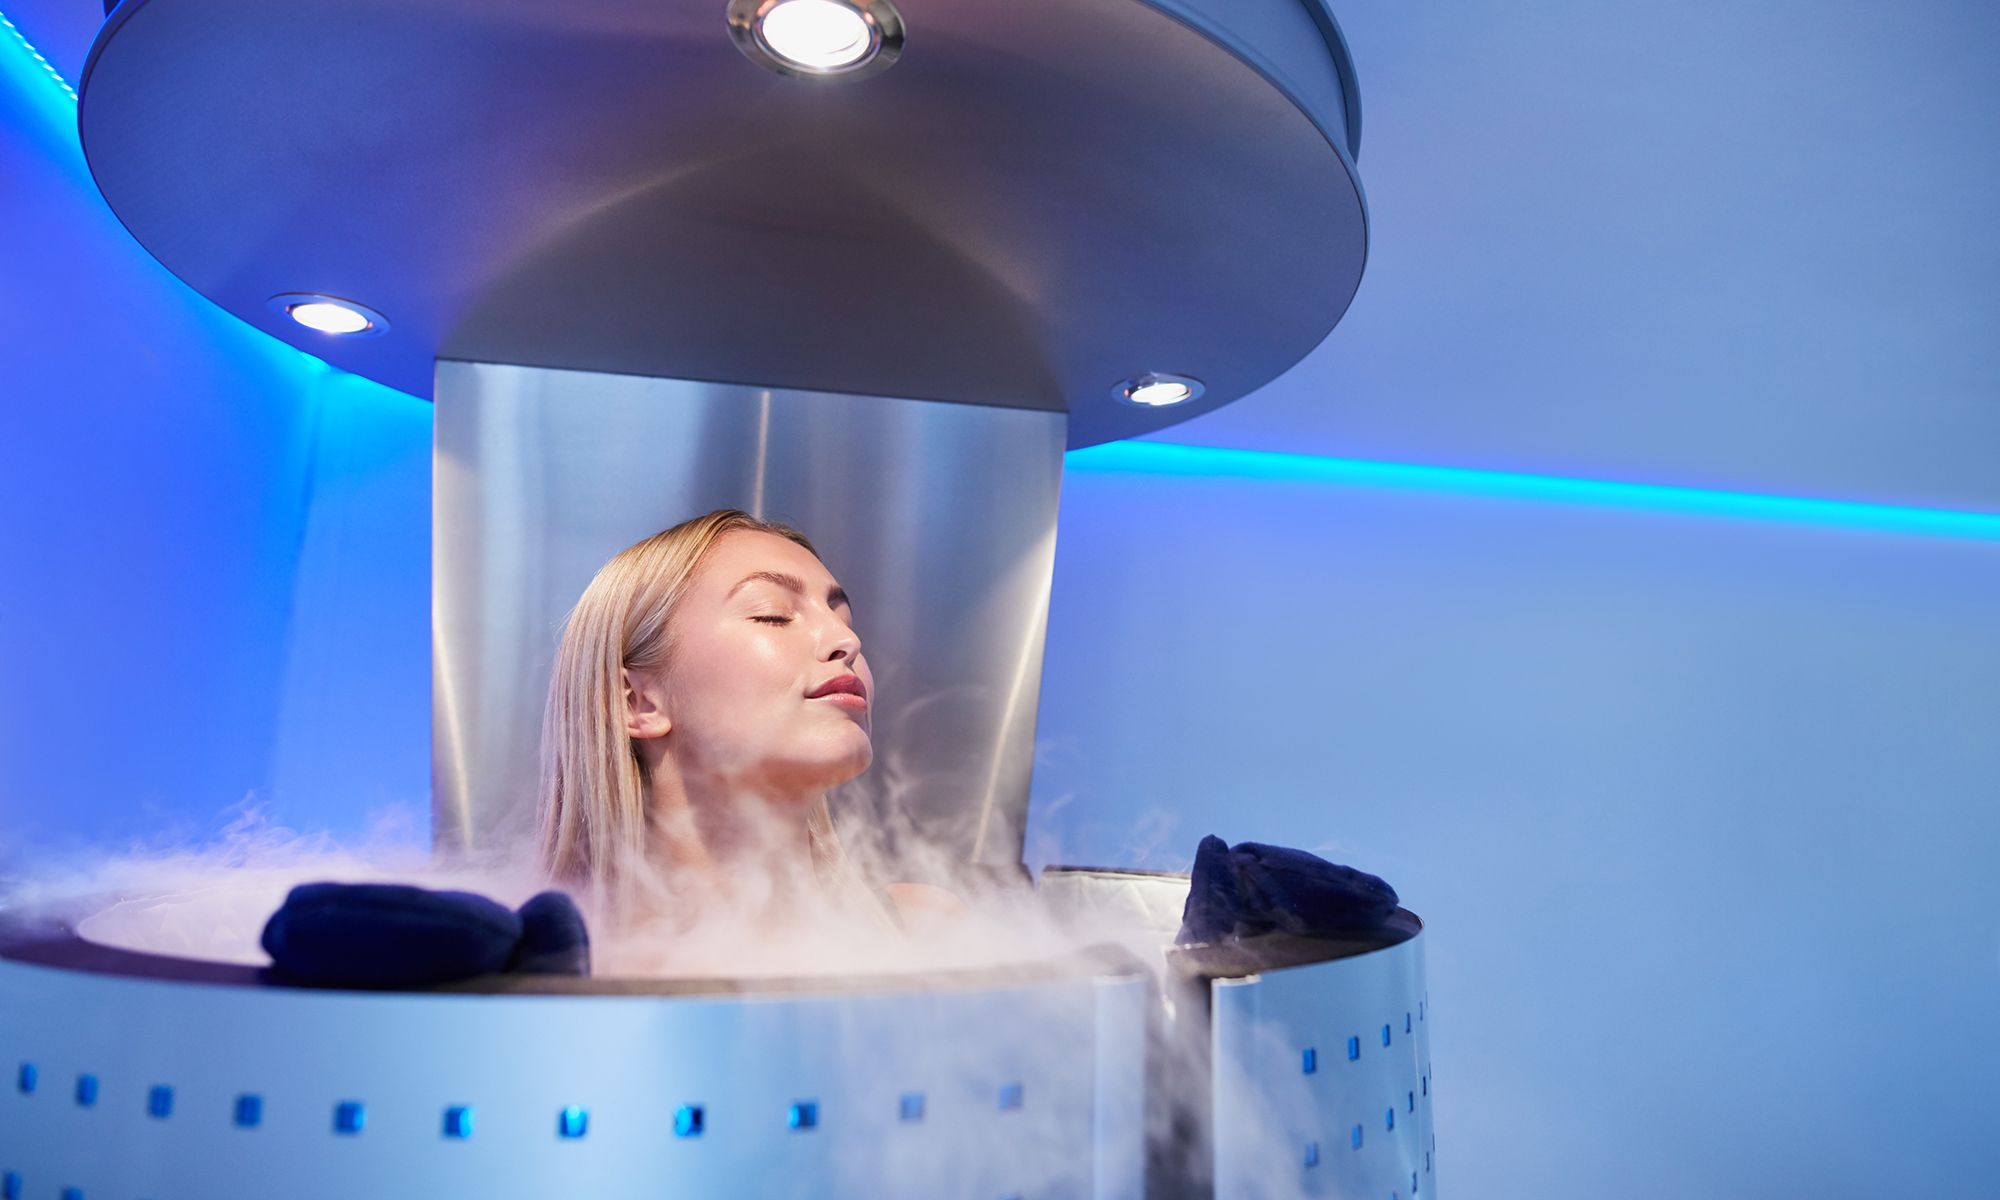 Freezing for Beauty: A Review of Hong Kong's First Cryotherapy Centre